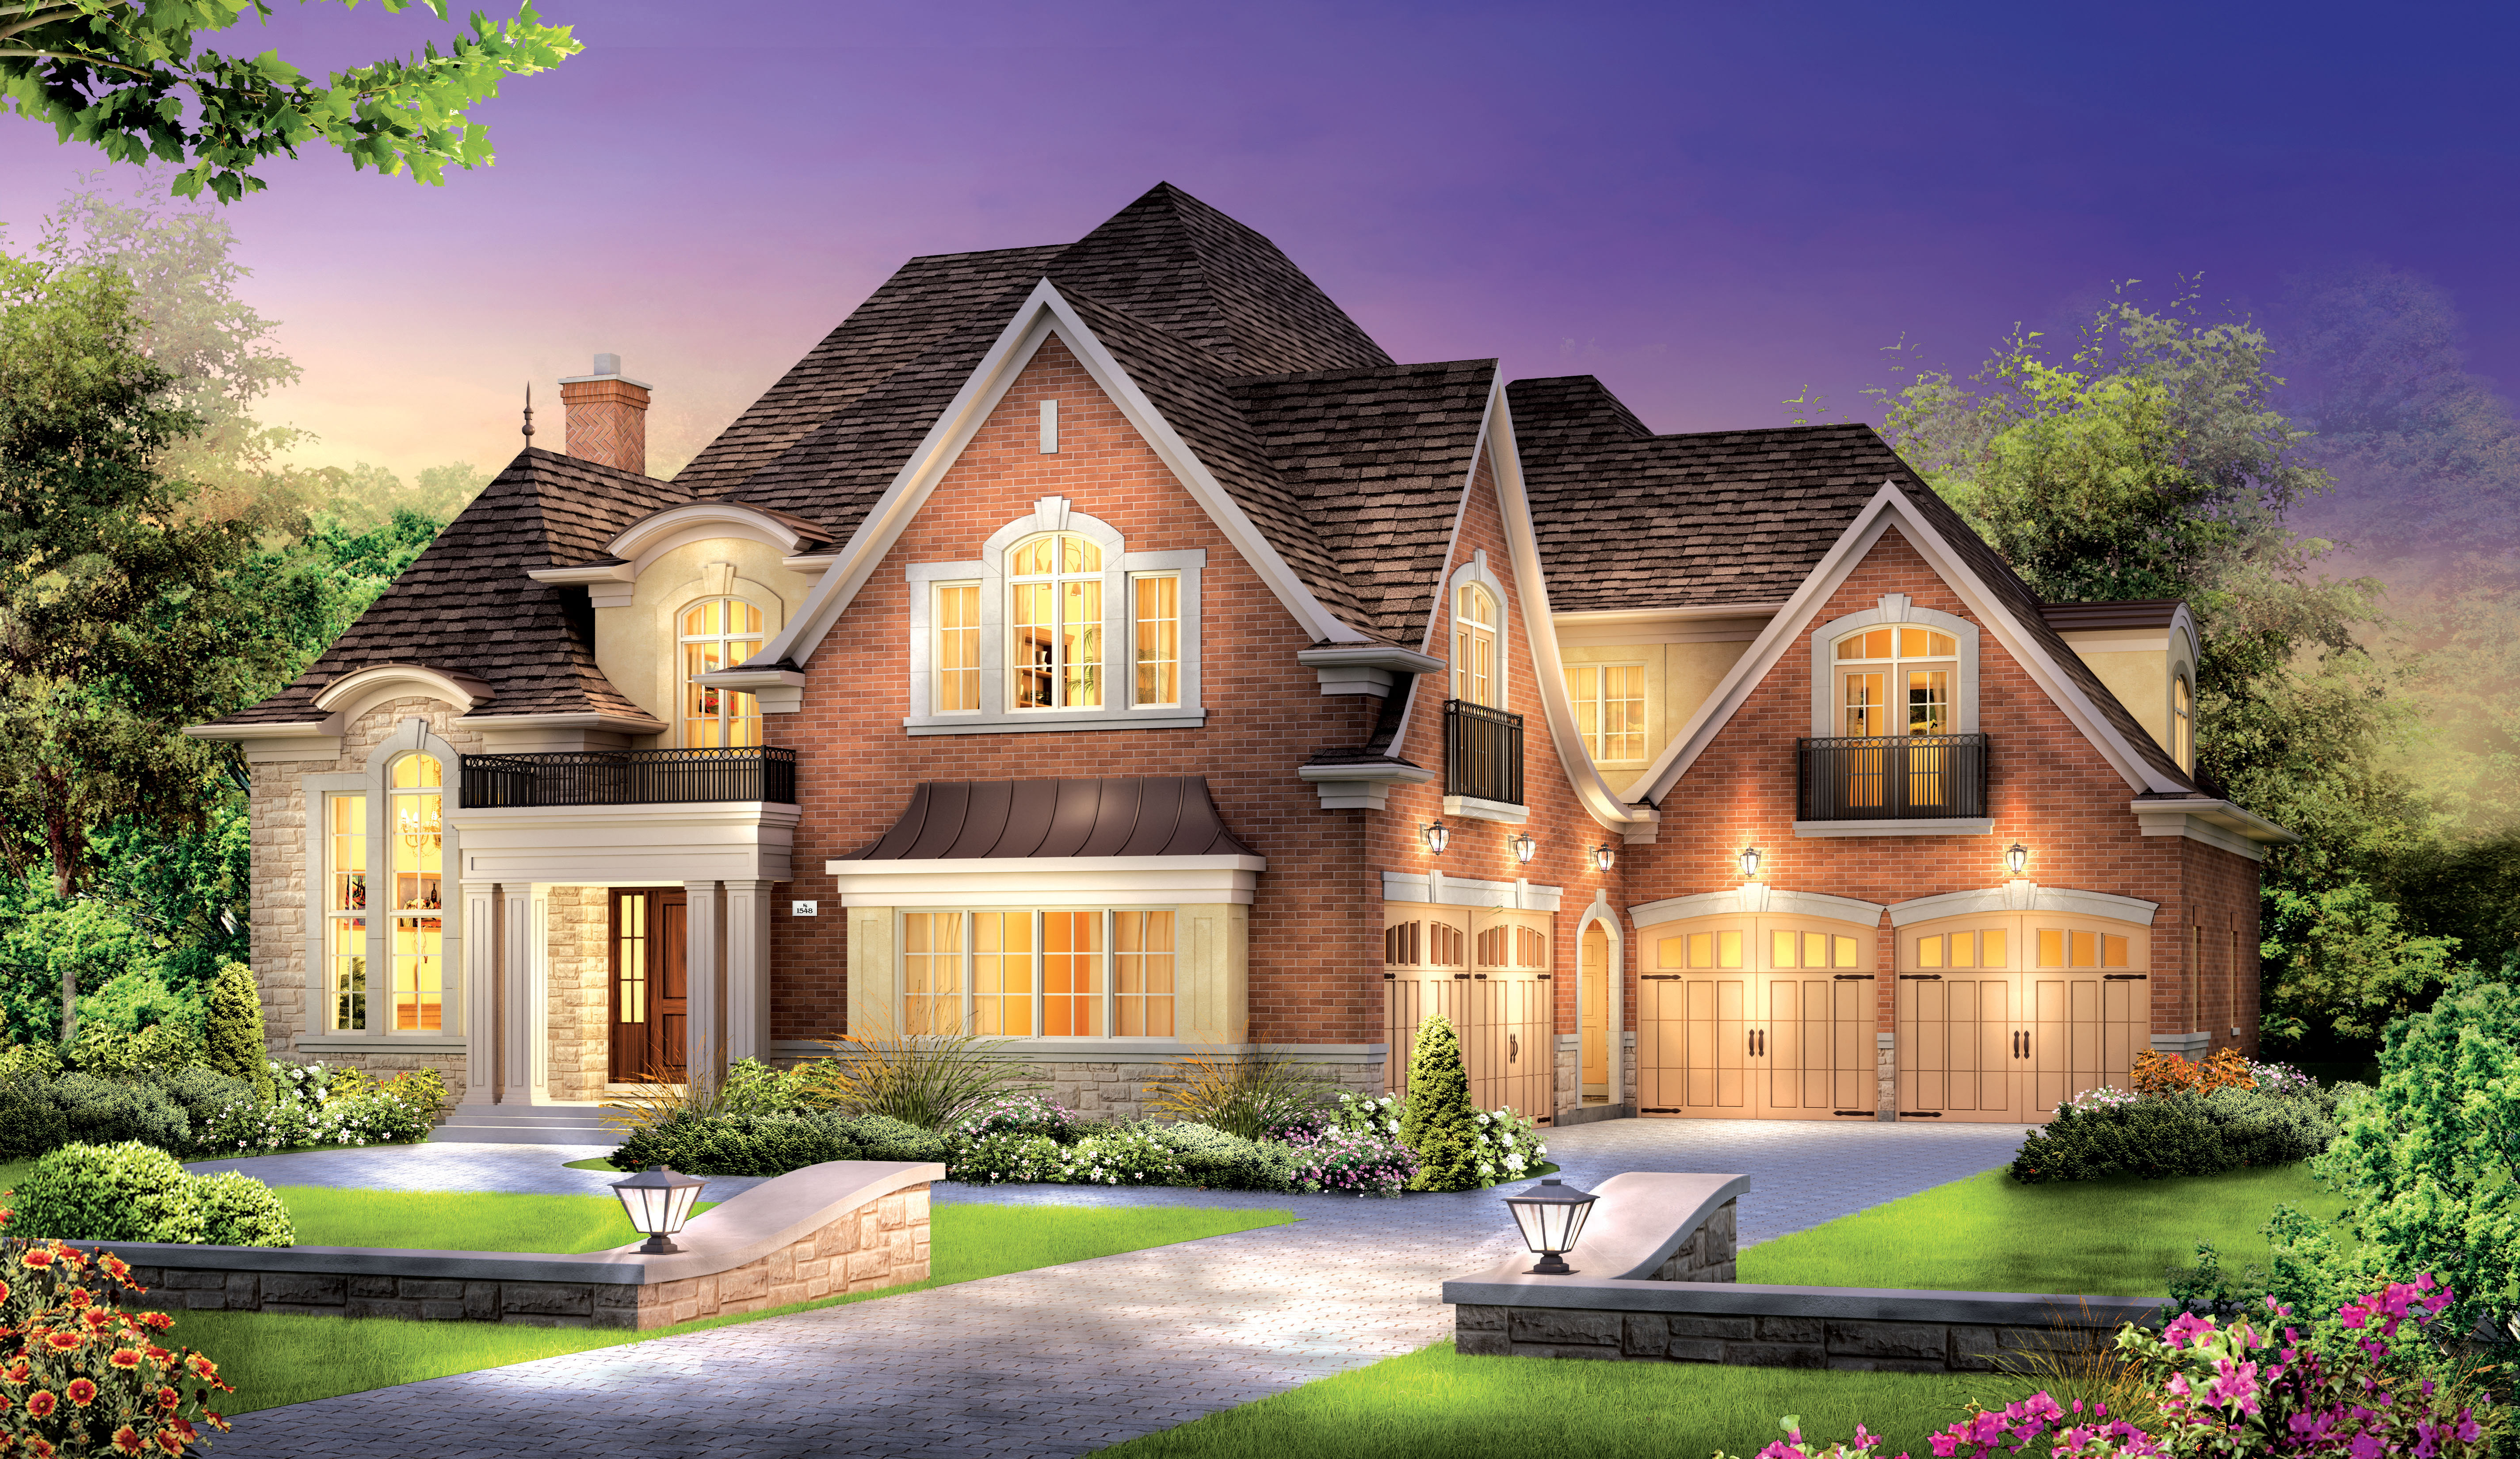 House 5k retina ultra hd wallpaper and background for House image hd